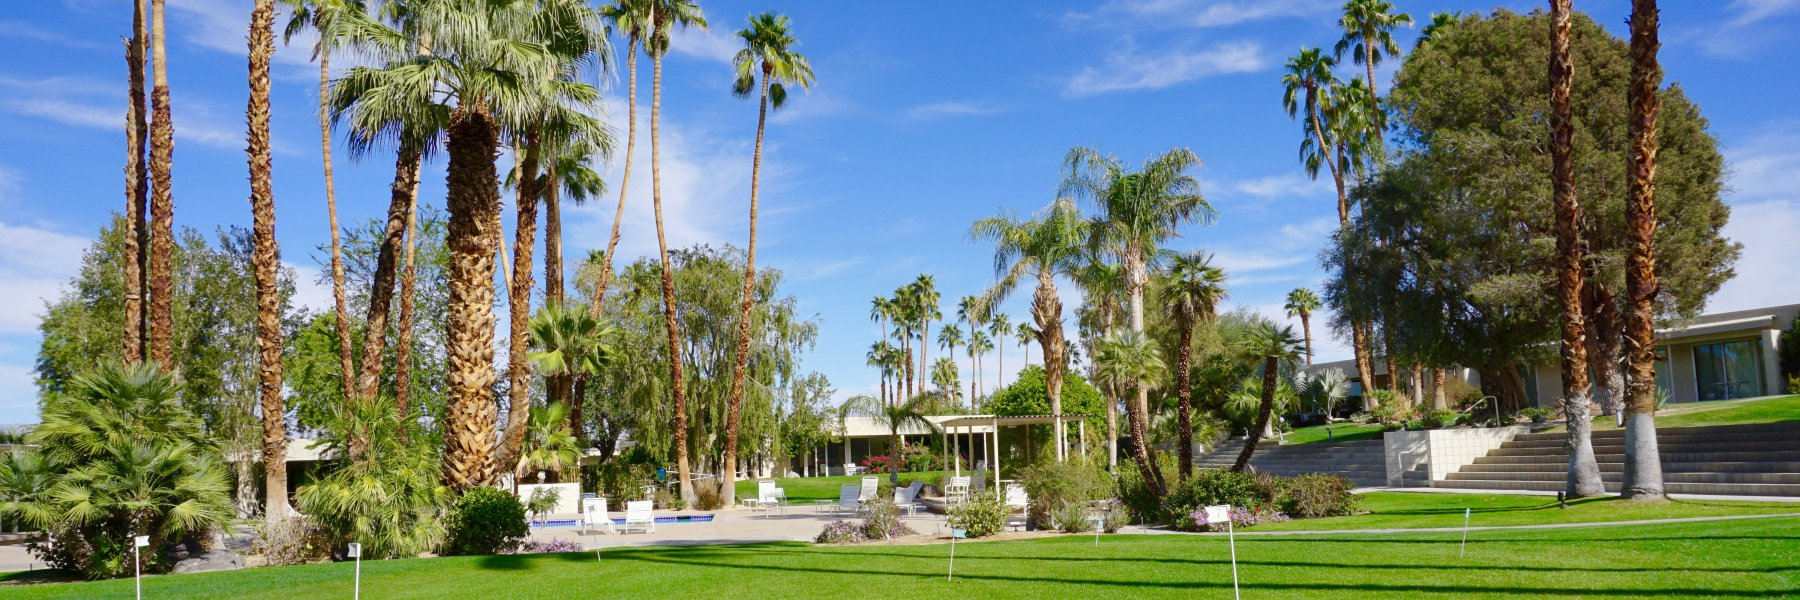 Sandpiper is a community of homes in Palm Desert California